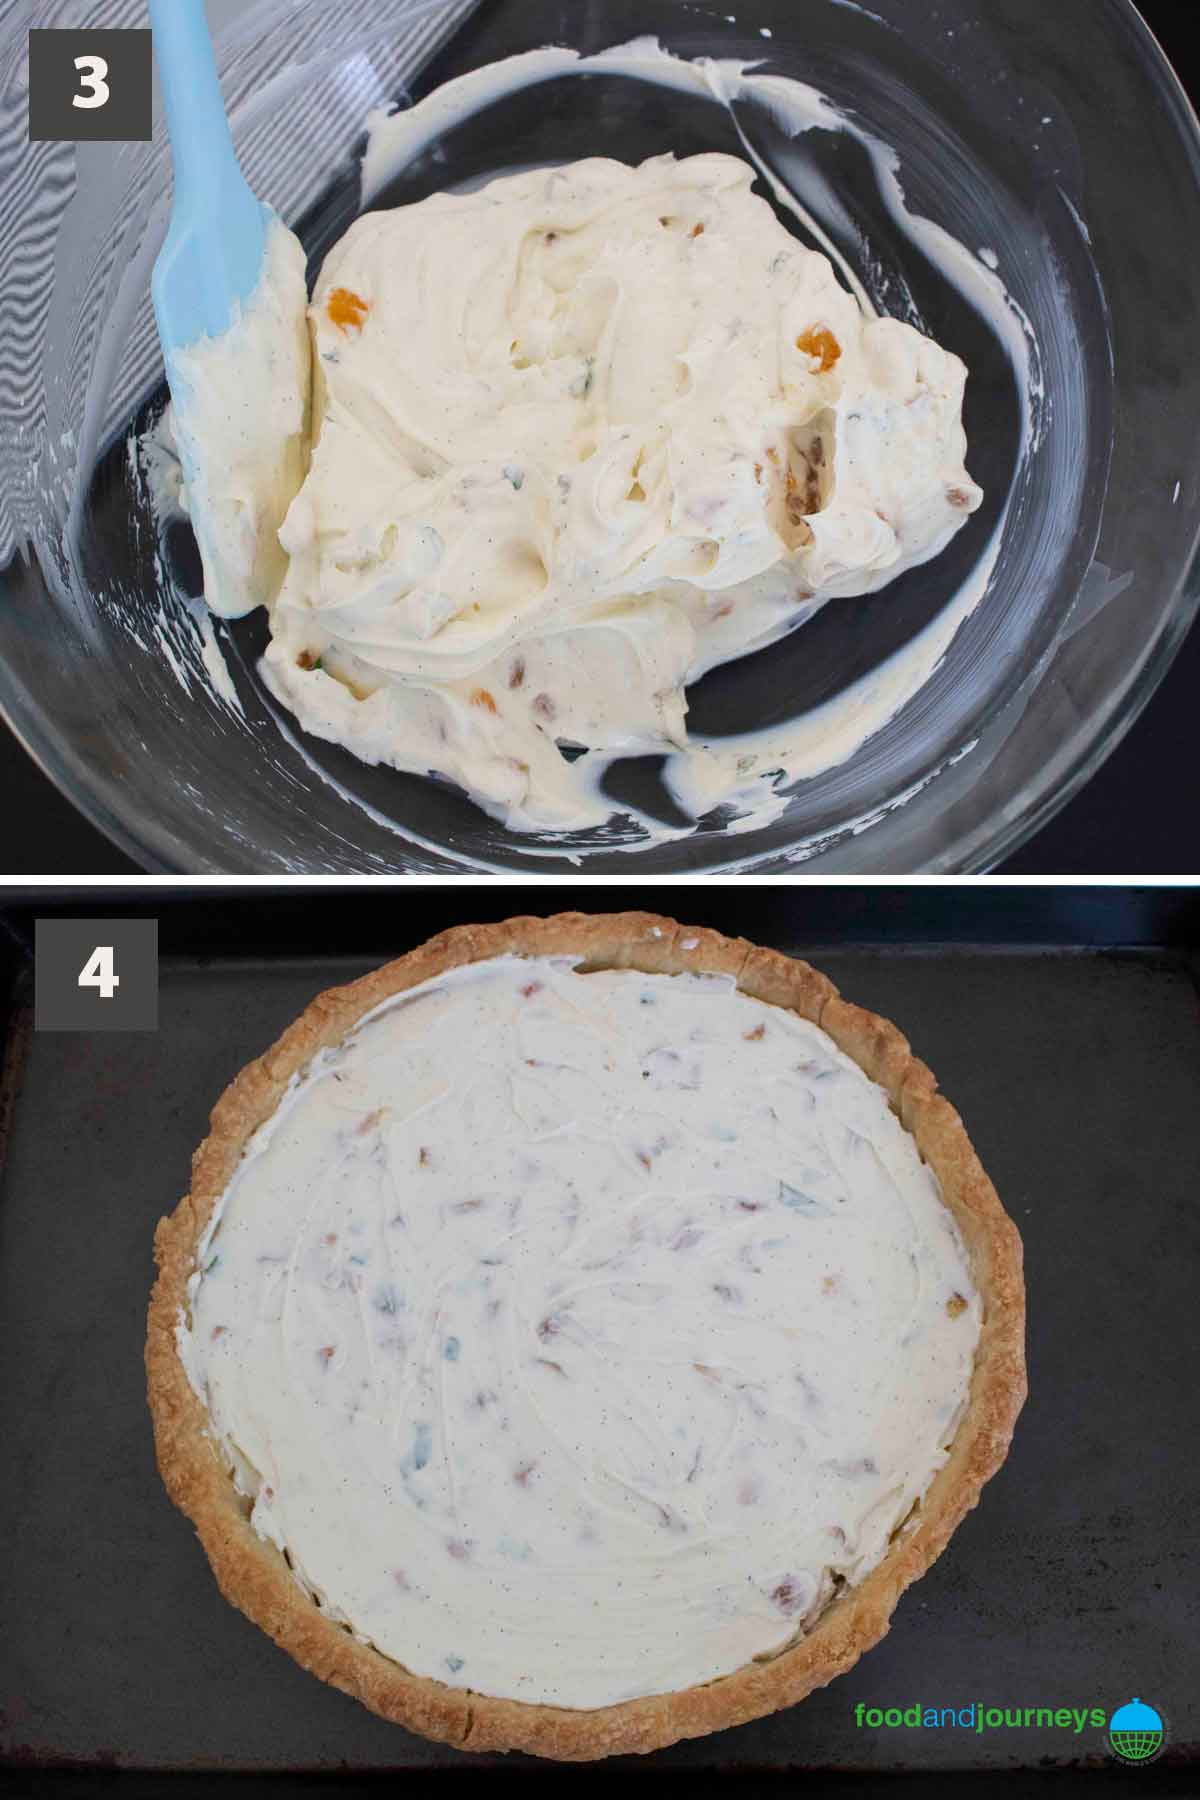 Latest second part of a collage of images showing the step by step process of making Mascarpone & Apricot Tart at home.